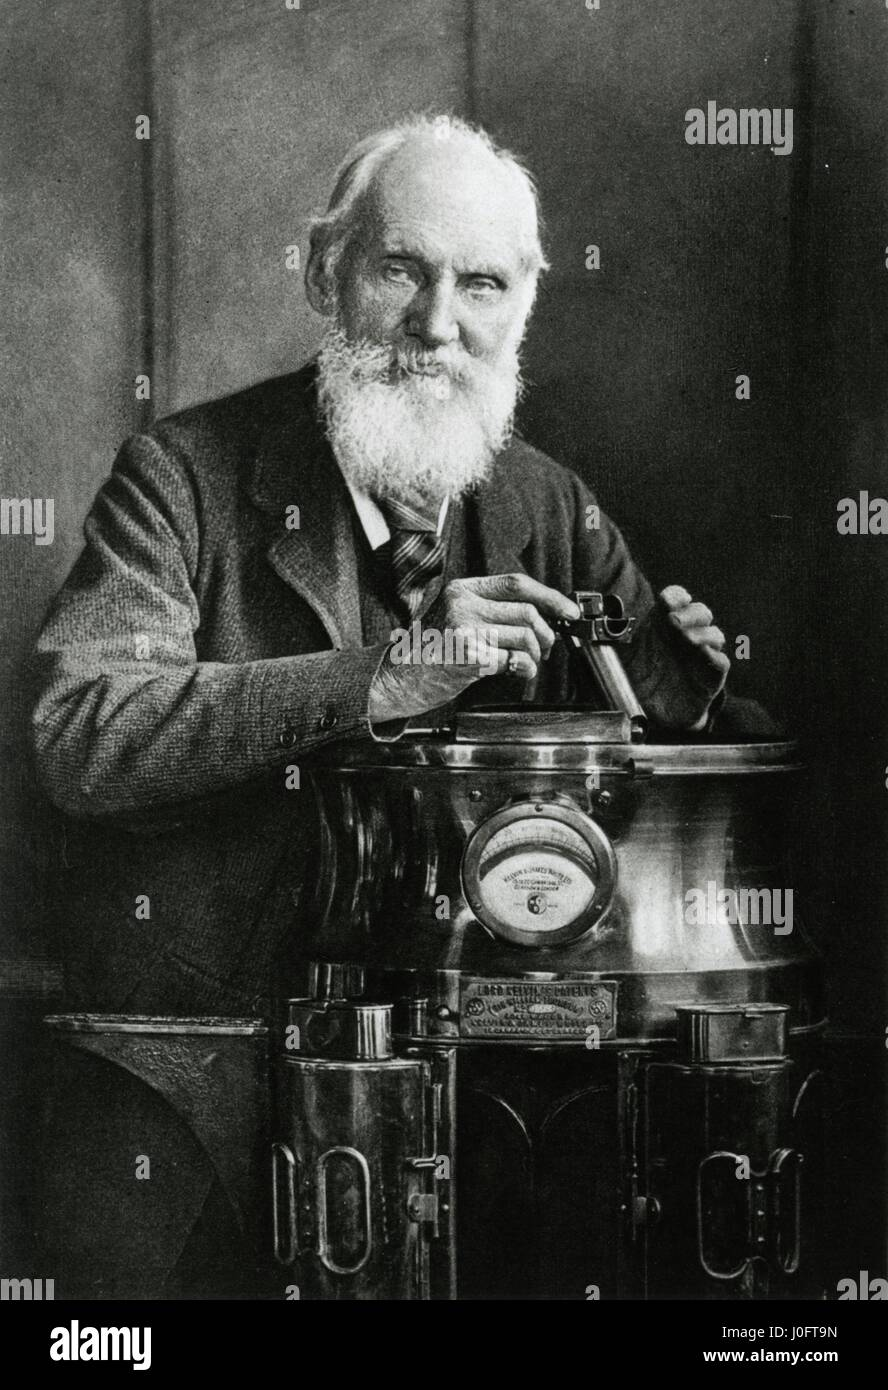 Lord Kelvin (1824-1907) and his compass, Glasgow - Stock Image